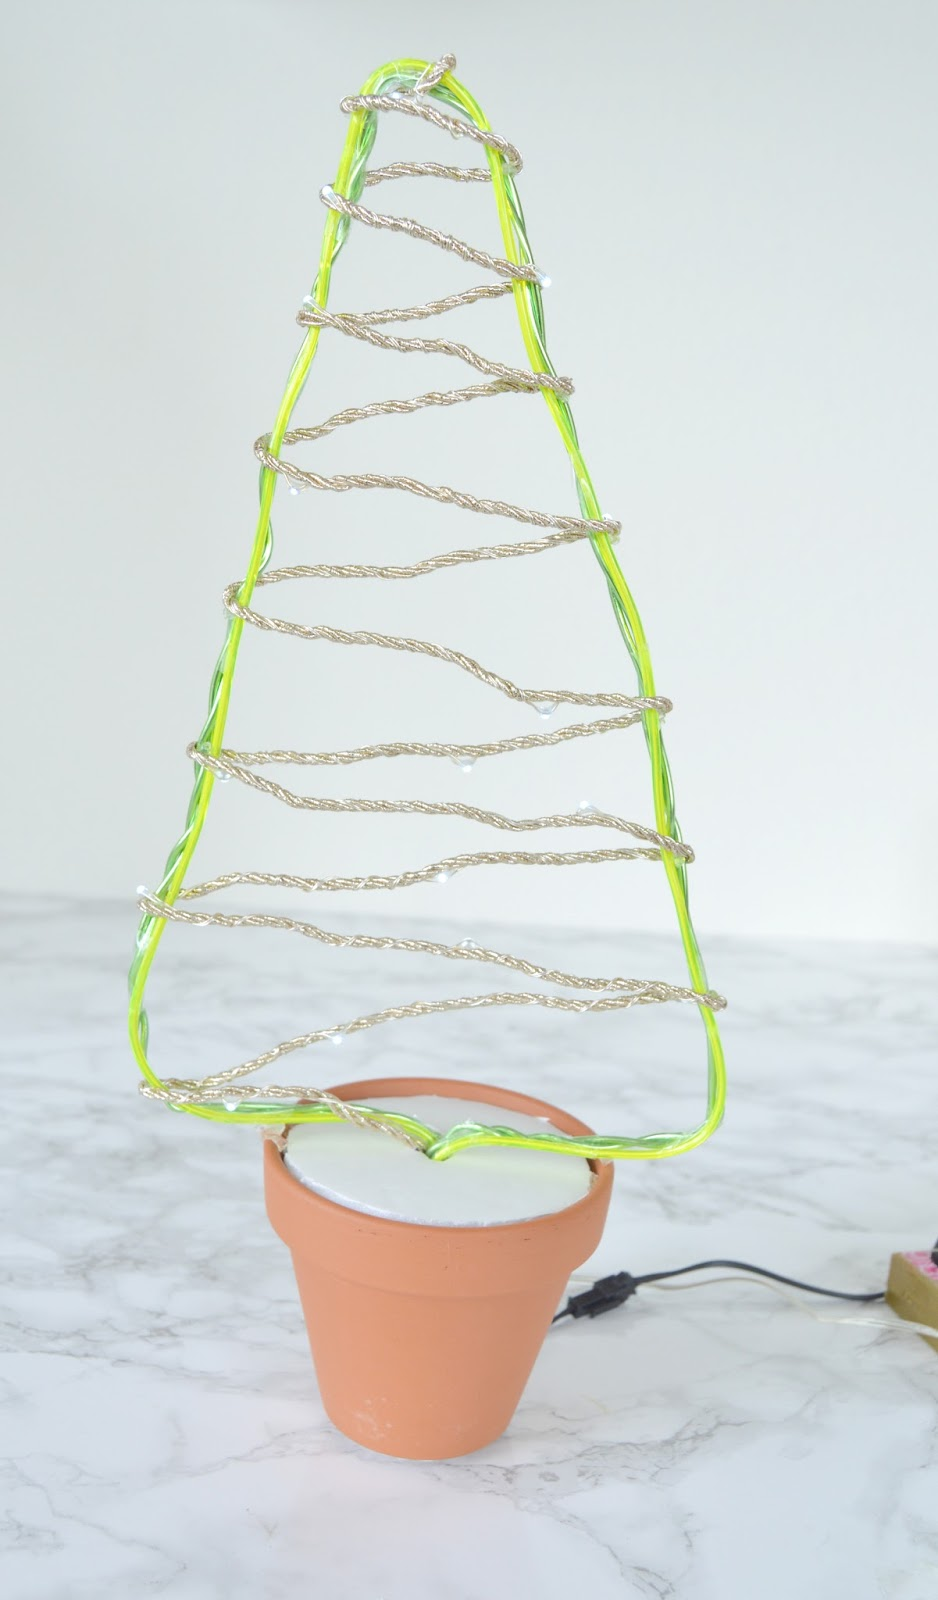 ... The Wired Ribbon Cord Together. Use Glue Dots Or Hot Glue On The Sides  And Wrap Them All Around In A Zig Zag Manner Covering The Christmas Tree  Shape.